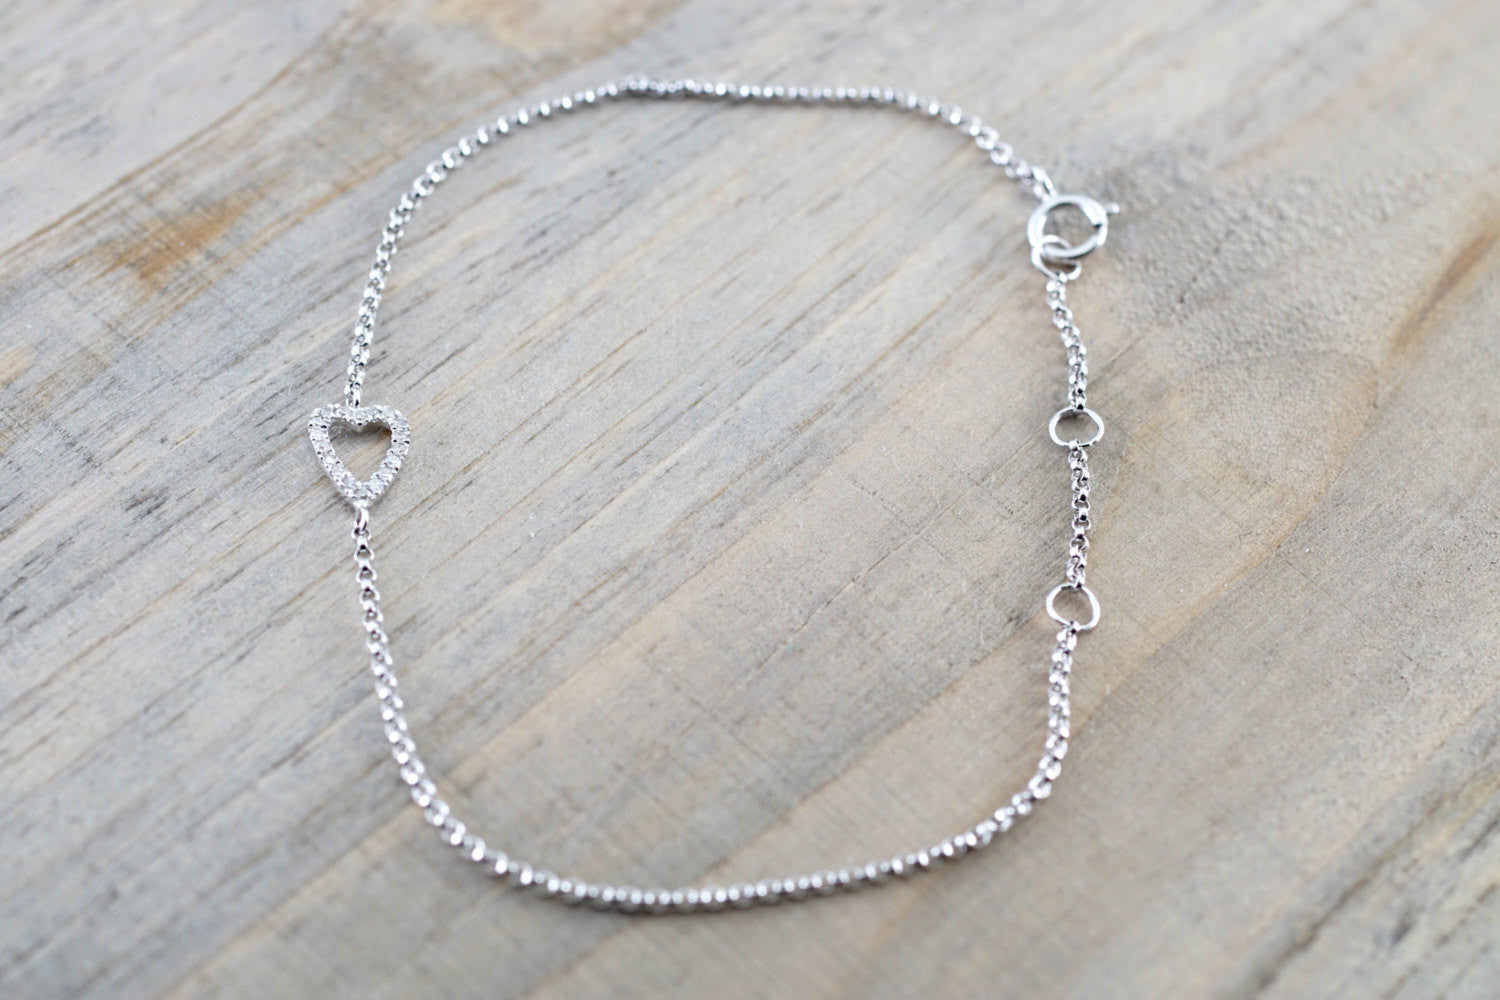 14k Solid White Open Heart Silhouette Micro Pave Bracelet - Brilliant Facets